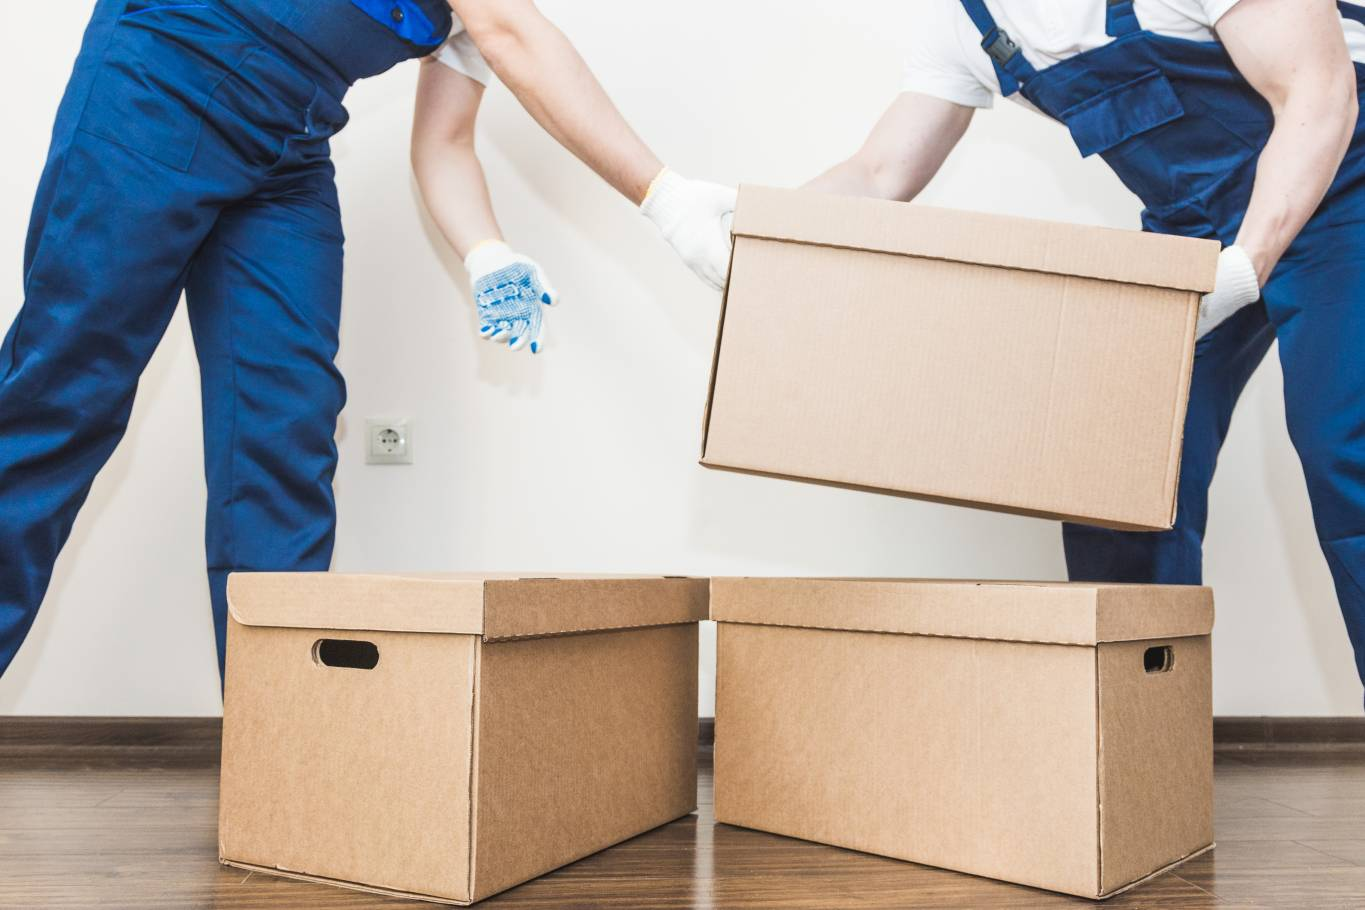 Professional Movers and Packers Make Relocation Happy In Zirakpur